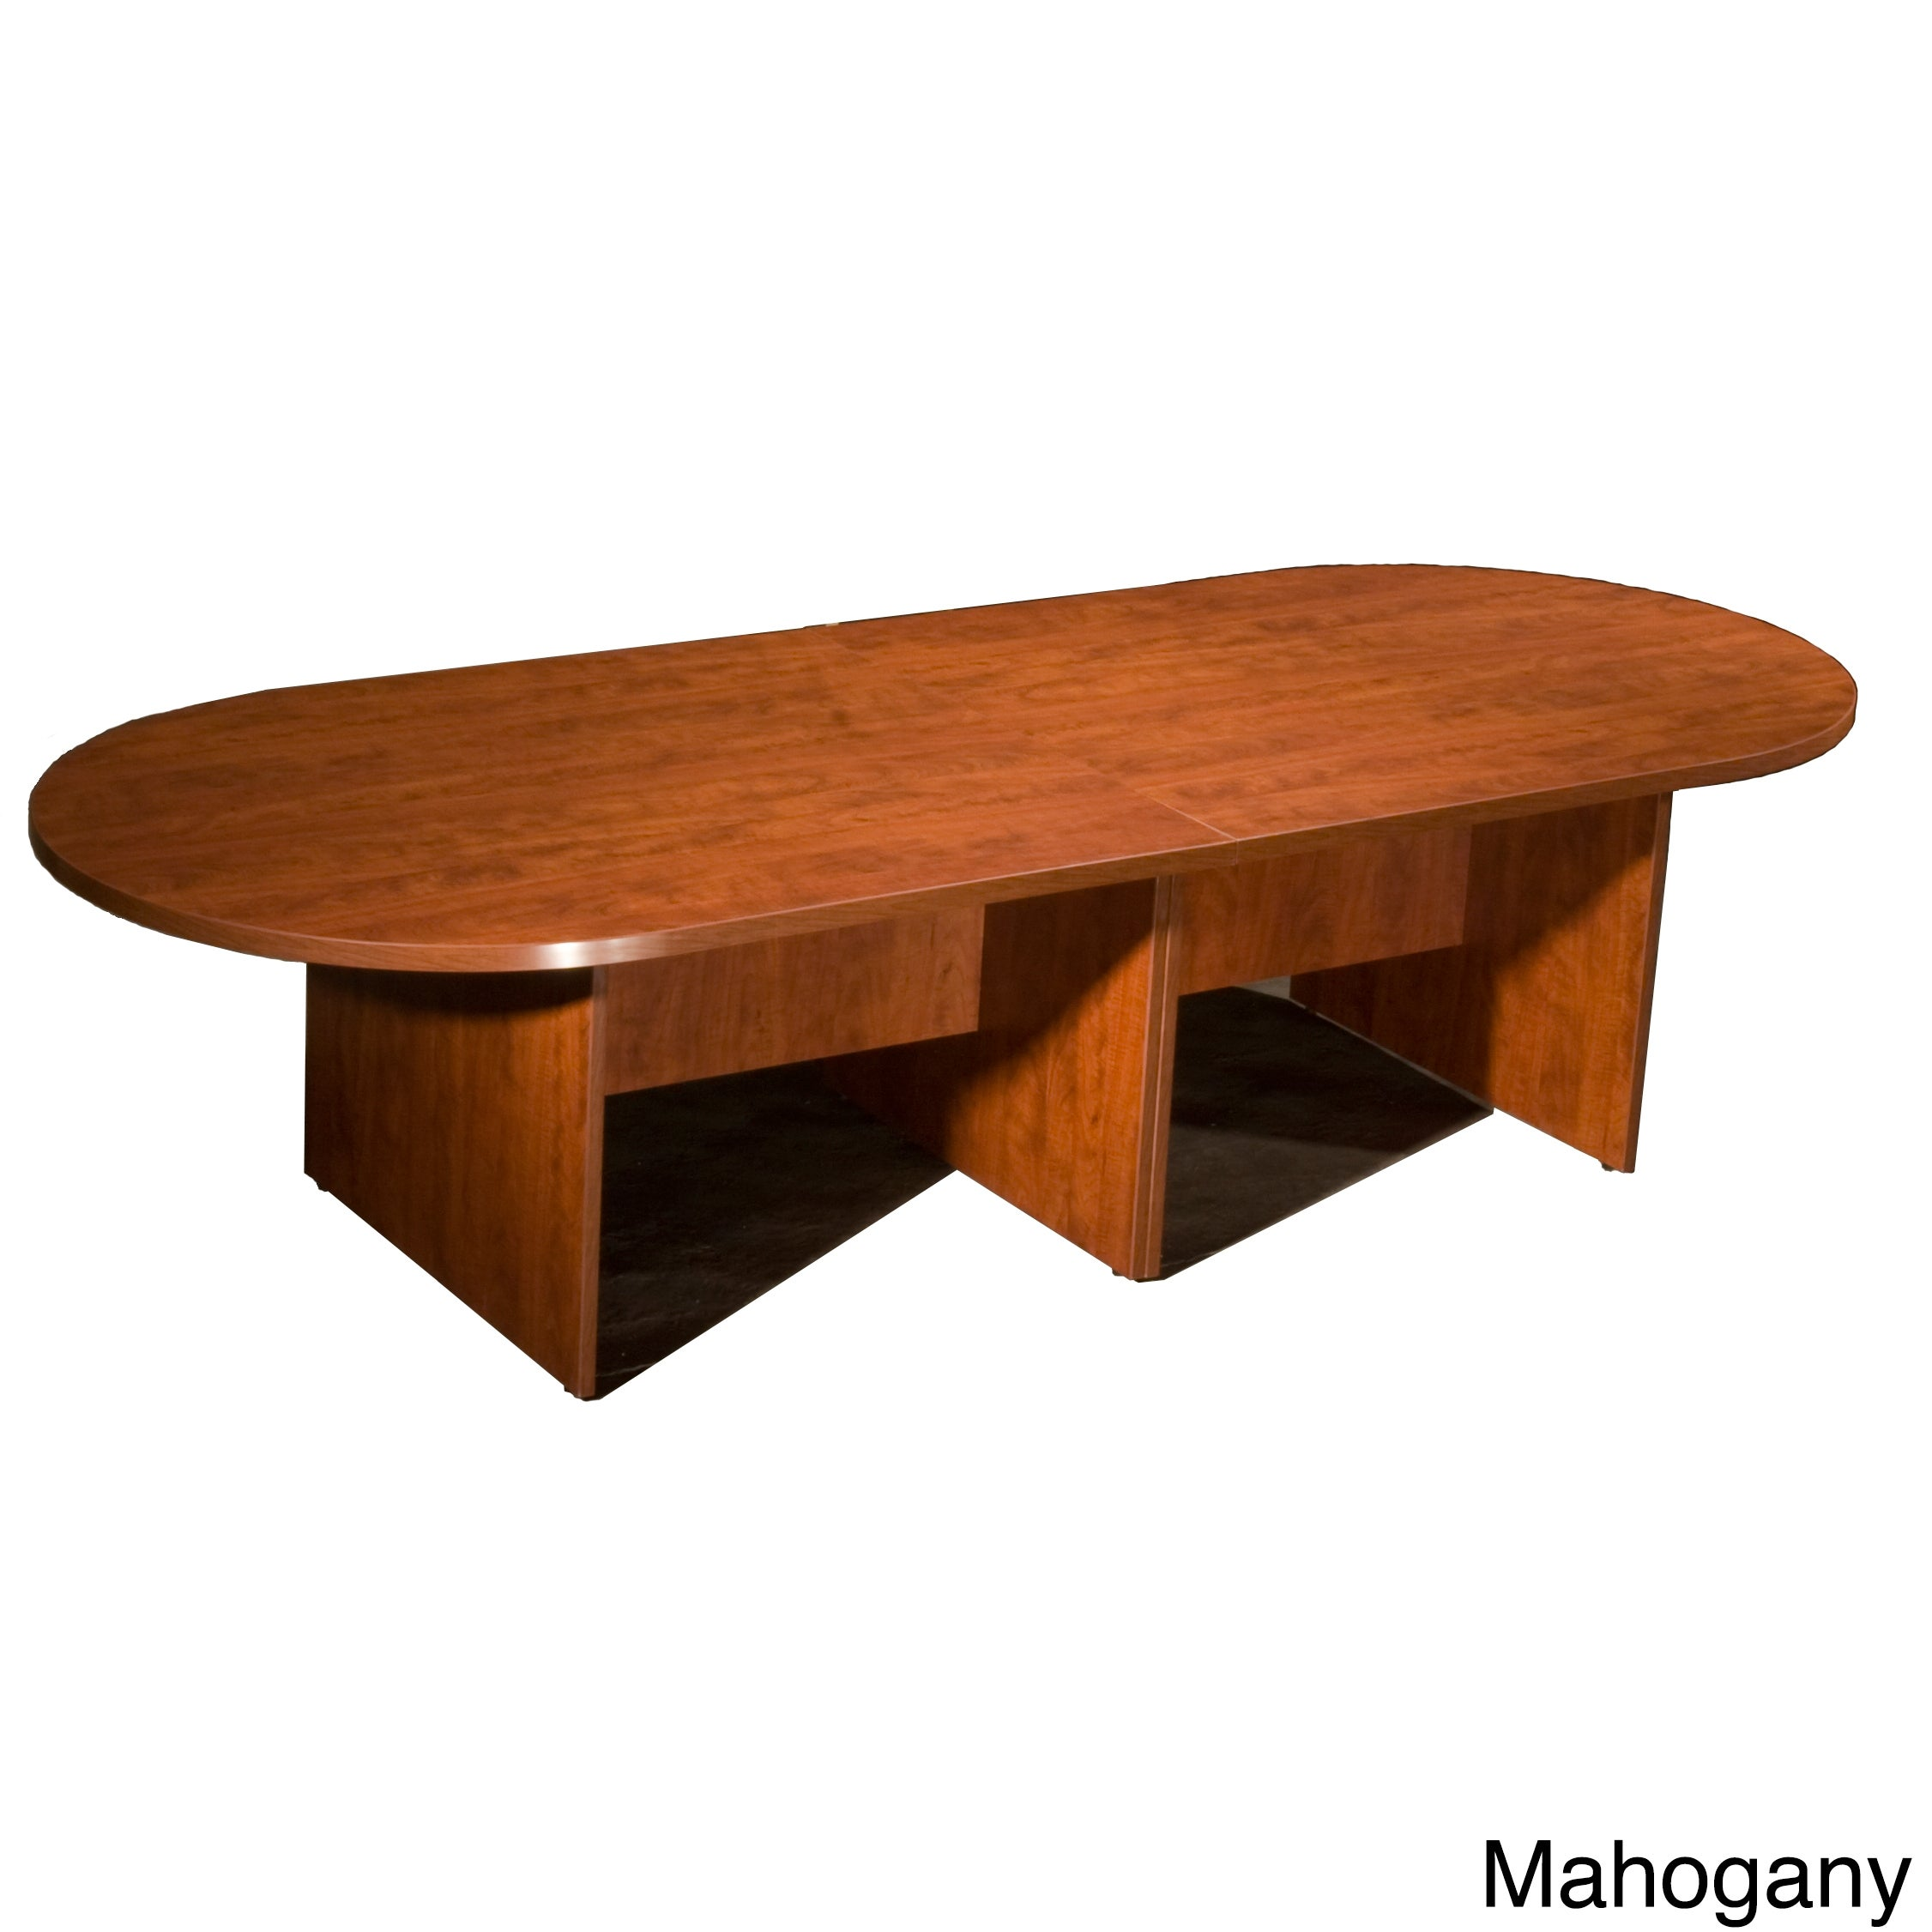 Picture of: Boss 10 Foot Racetrack Conference Table Overstock 7900859 Red Cherry Finish